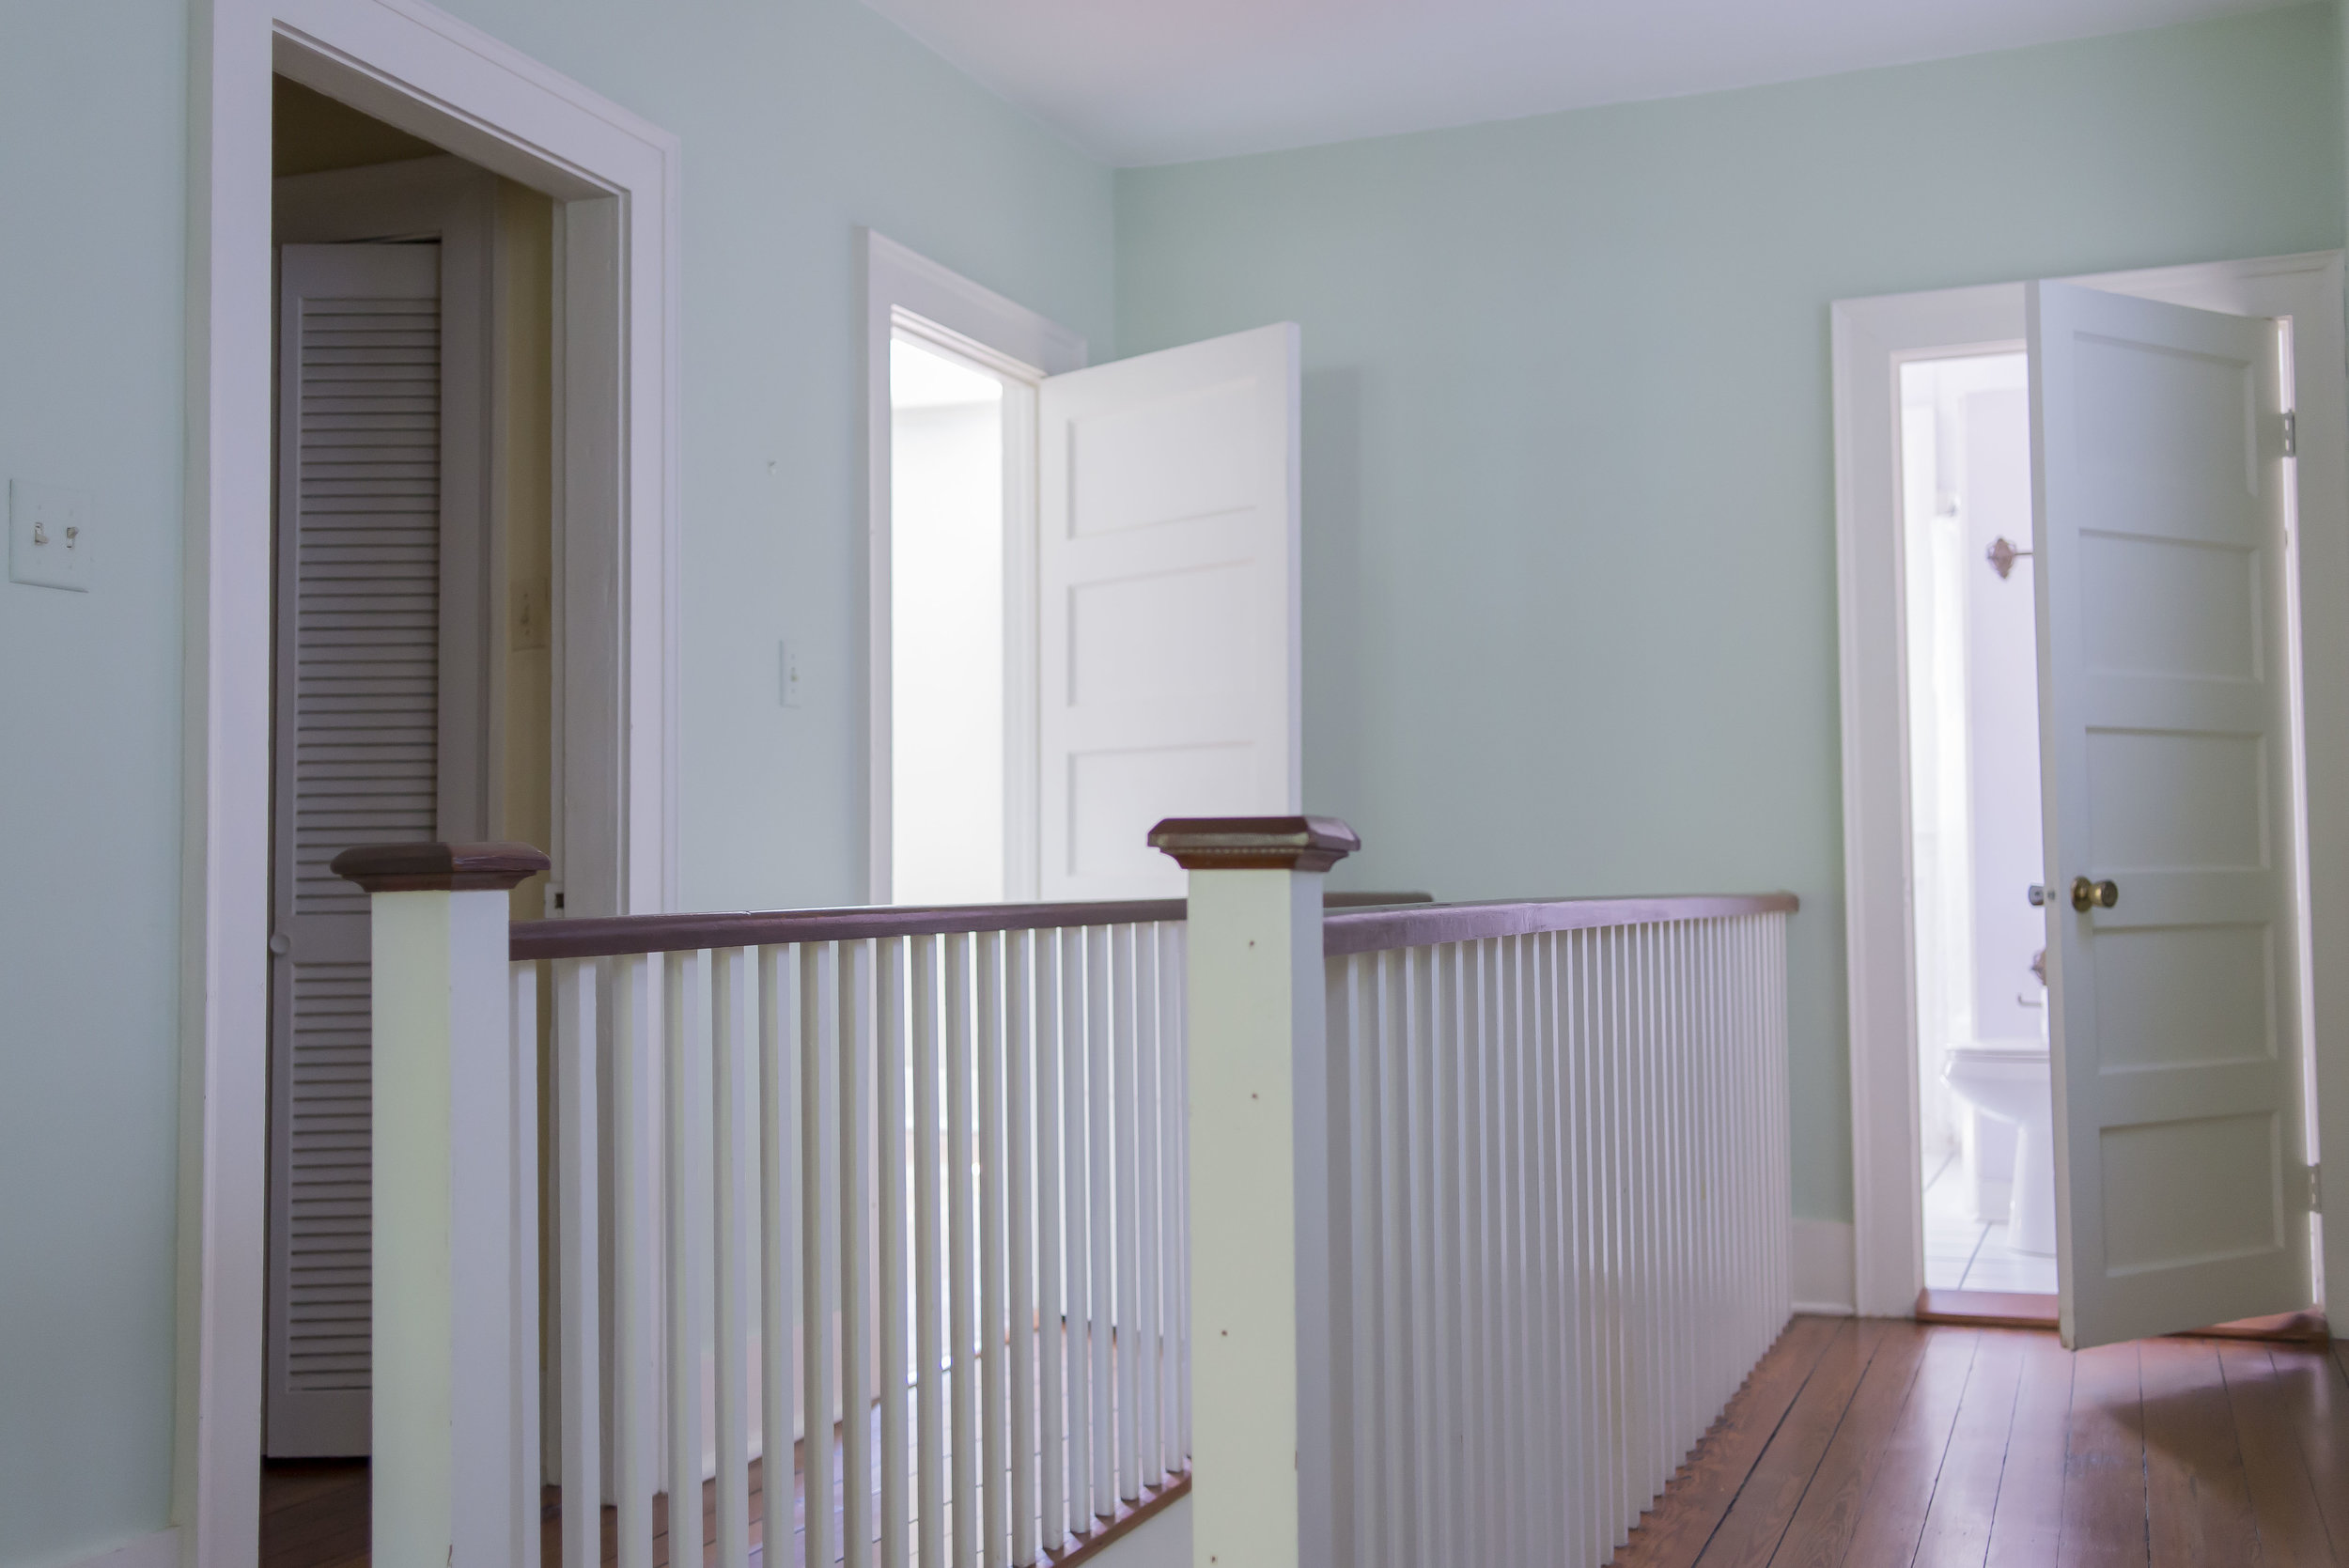 The upstairs hallways were charming, but the arrangement of the master bathroom entry, and the narrow unusable spaces created awkward energy at the top of the landing.